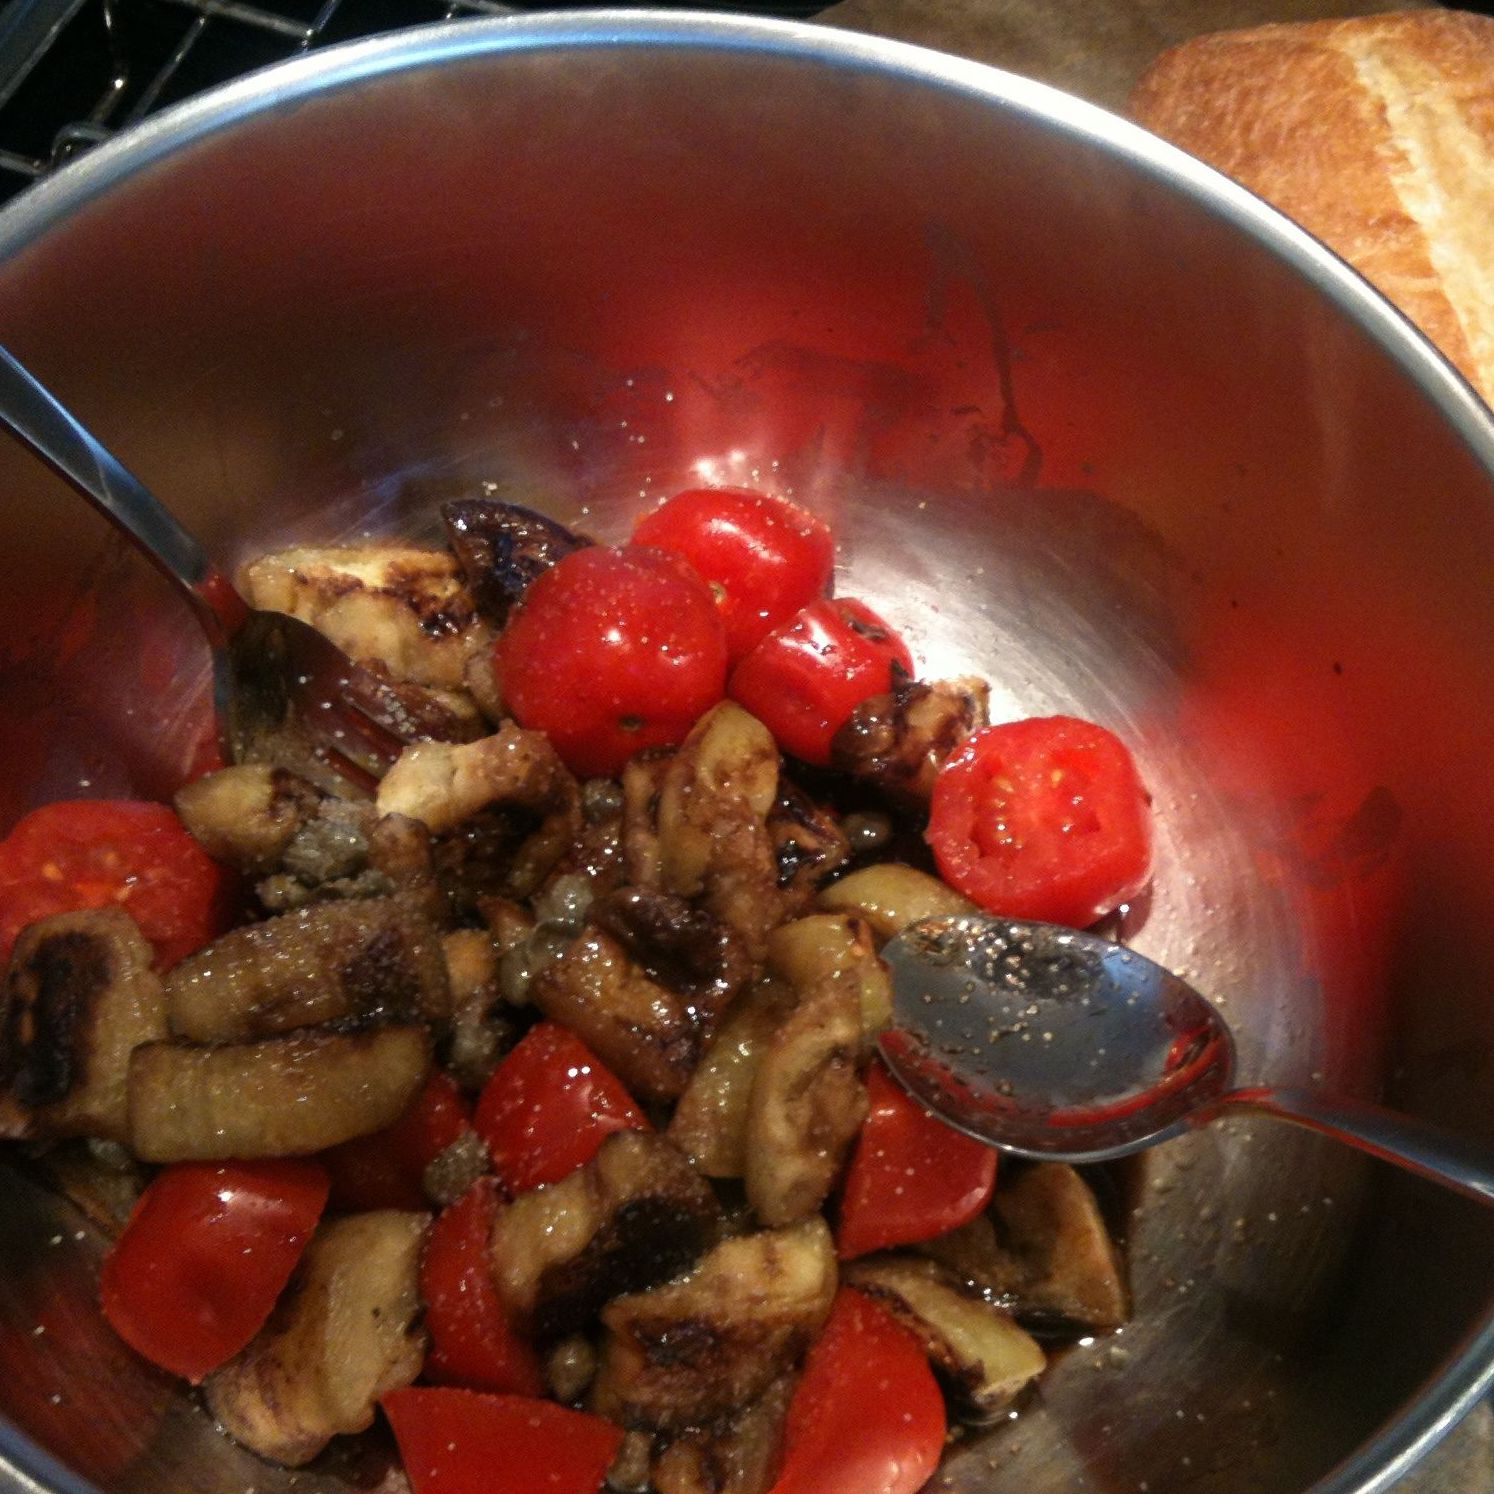 eggplant and tomatoes in a stainless steel bowl